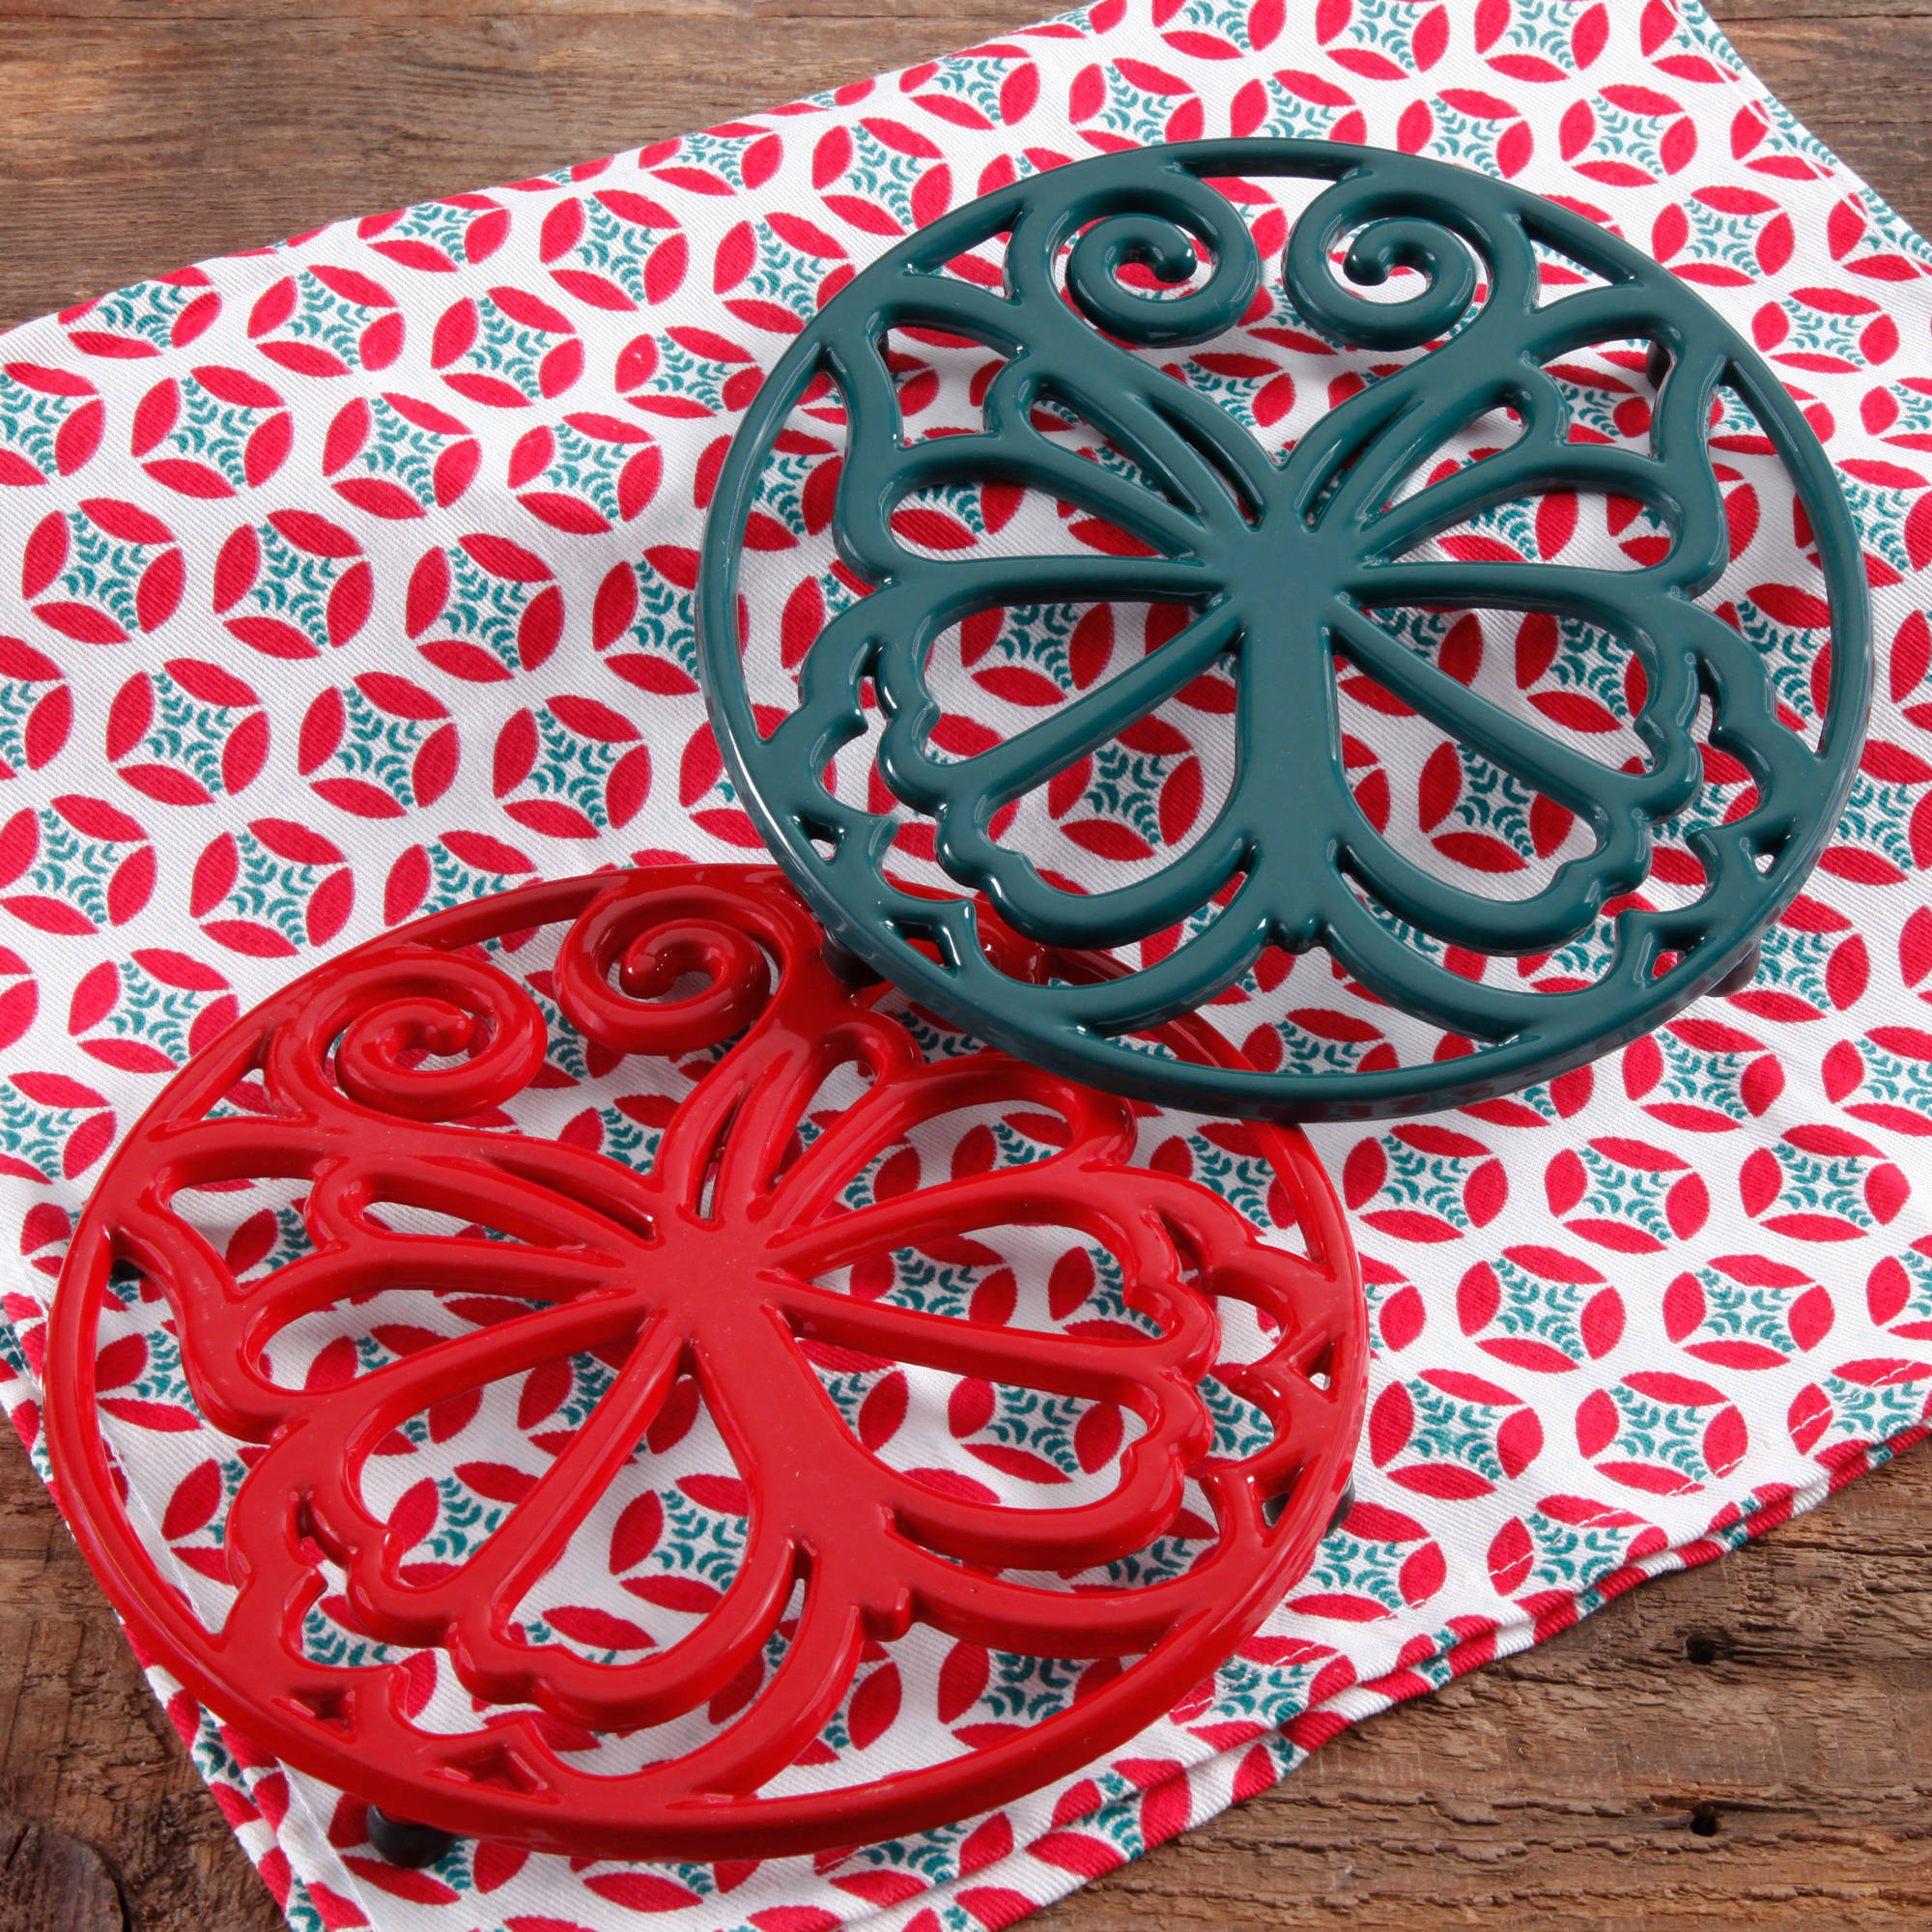 The Pioneer Woman Timeless Beauty 2-Pack 8  Red & Ocean Teal Enameled Cast Iron Trivet Set